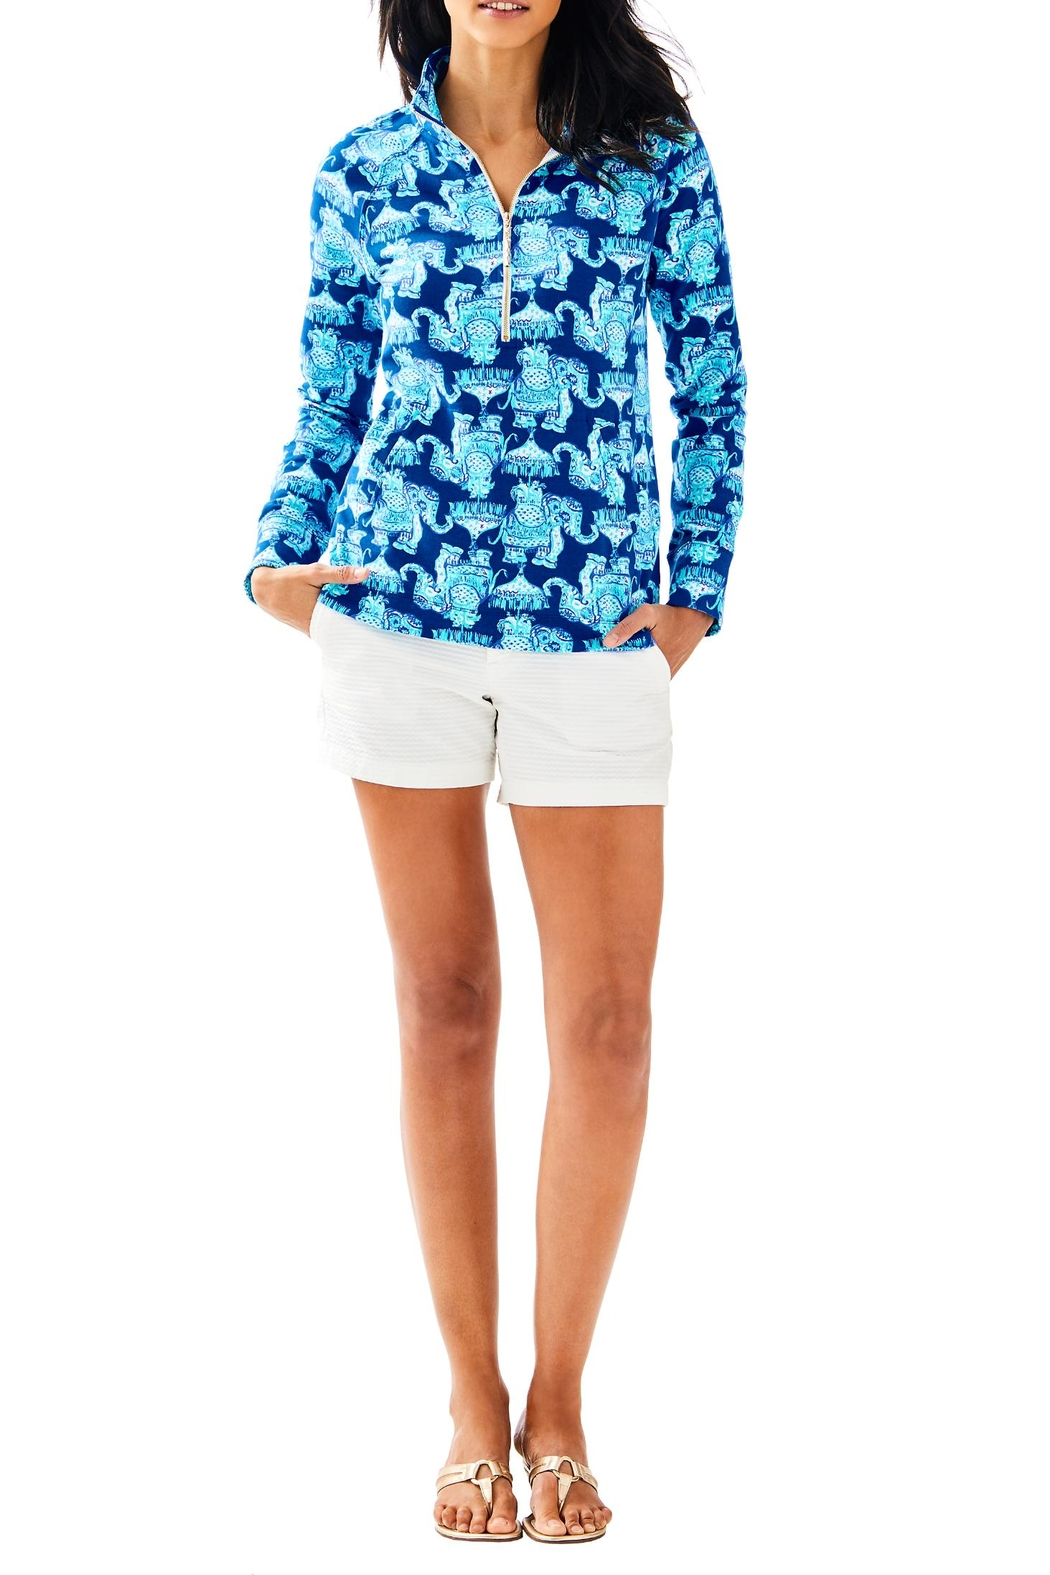 Lilly Pulitzer Skipper Printed Popover - Side Cropped Image